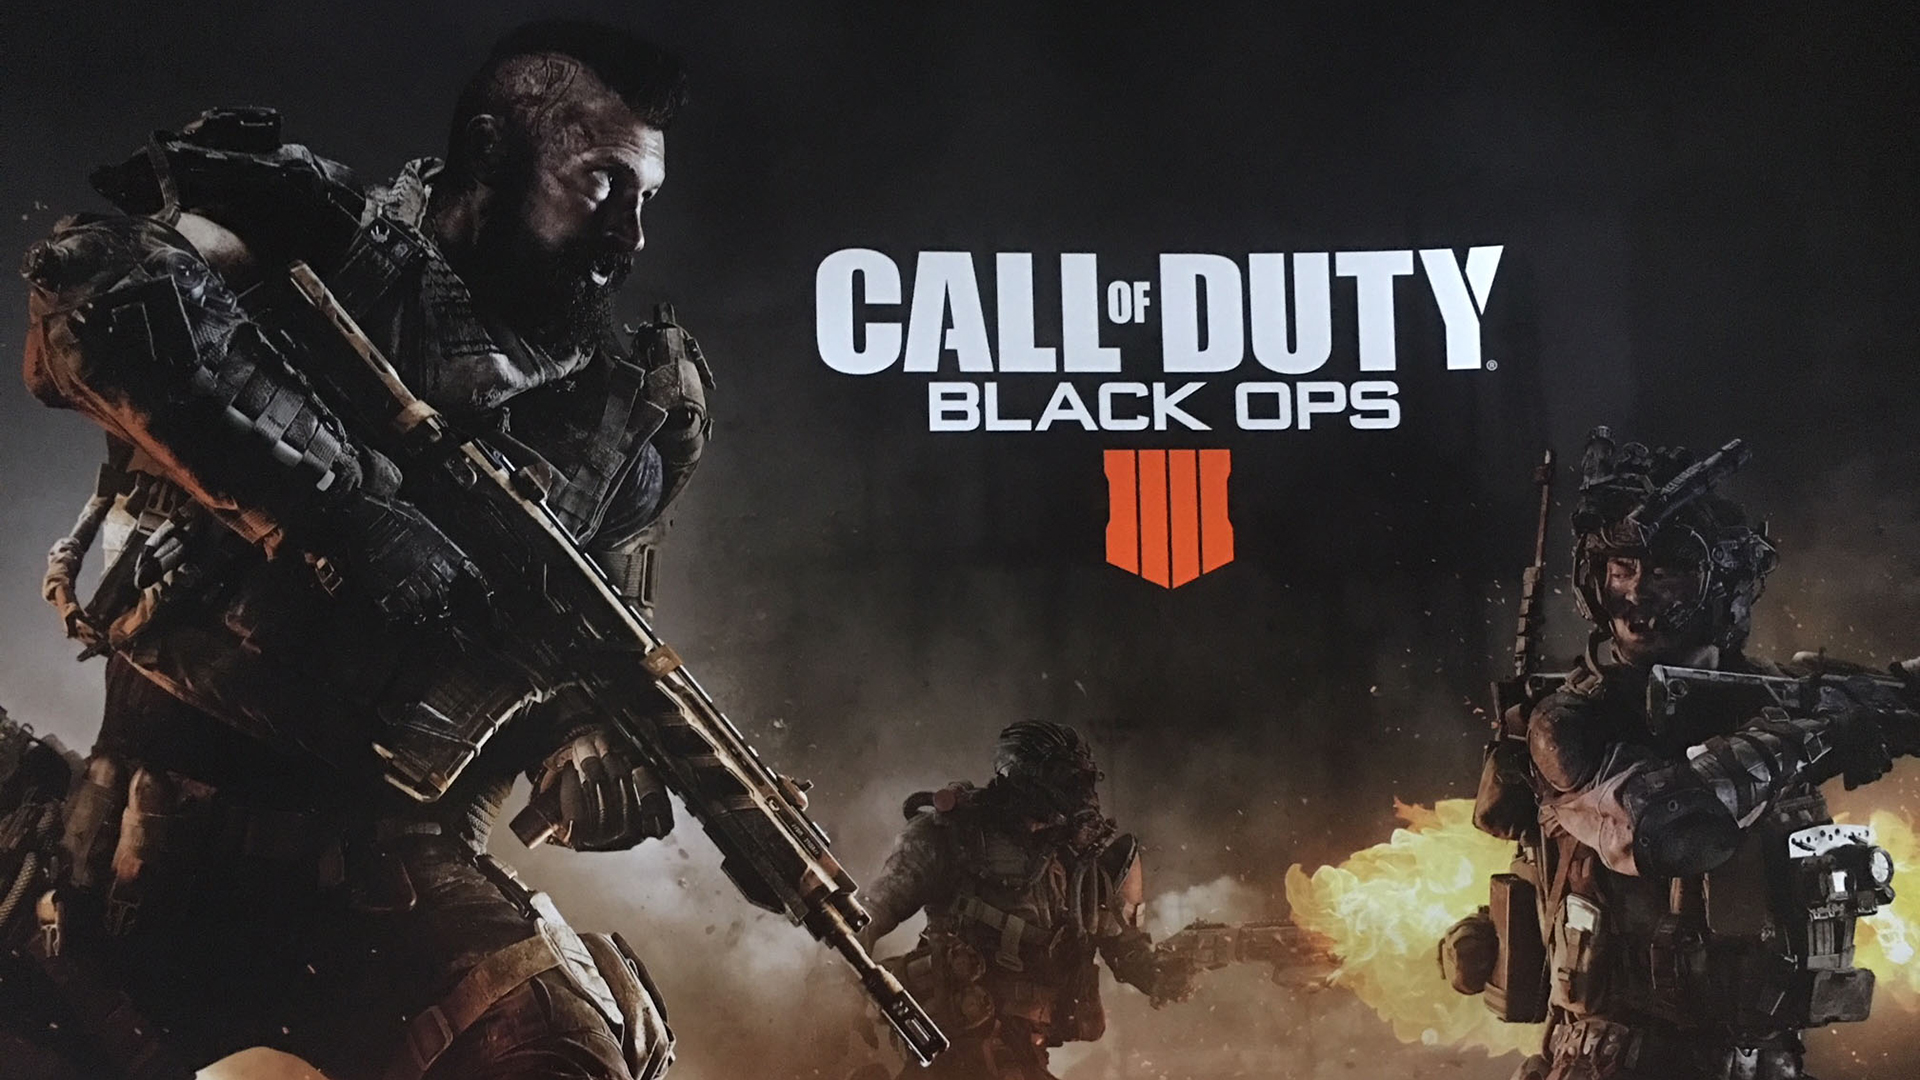 Call of Duty Black Ops 4 Wallpapers. ««